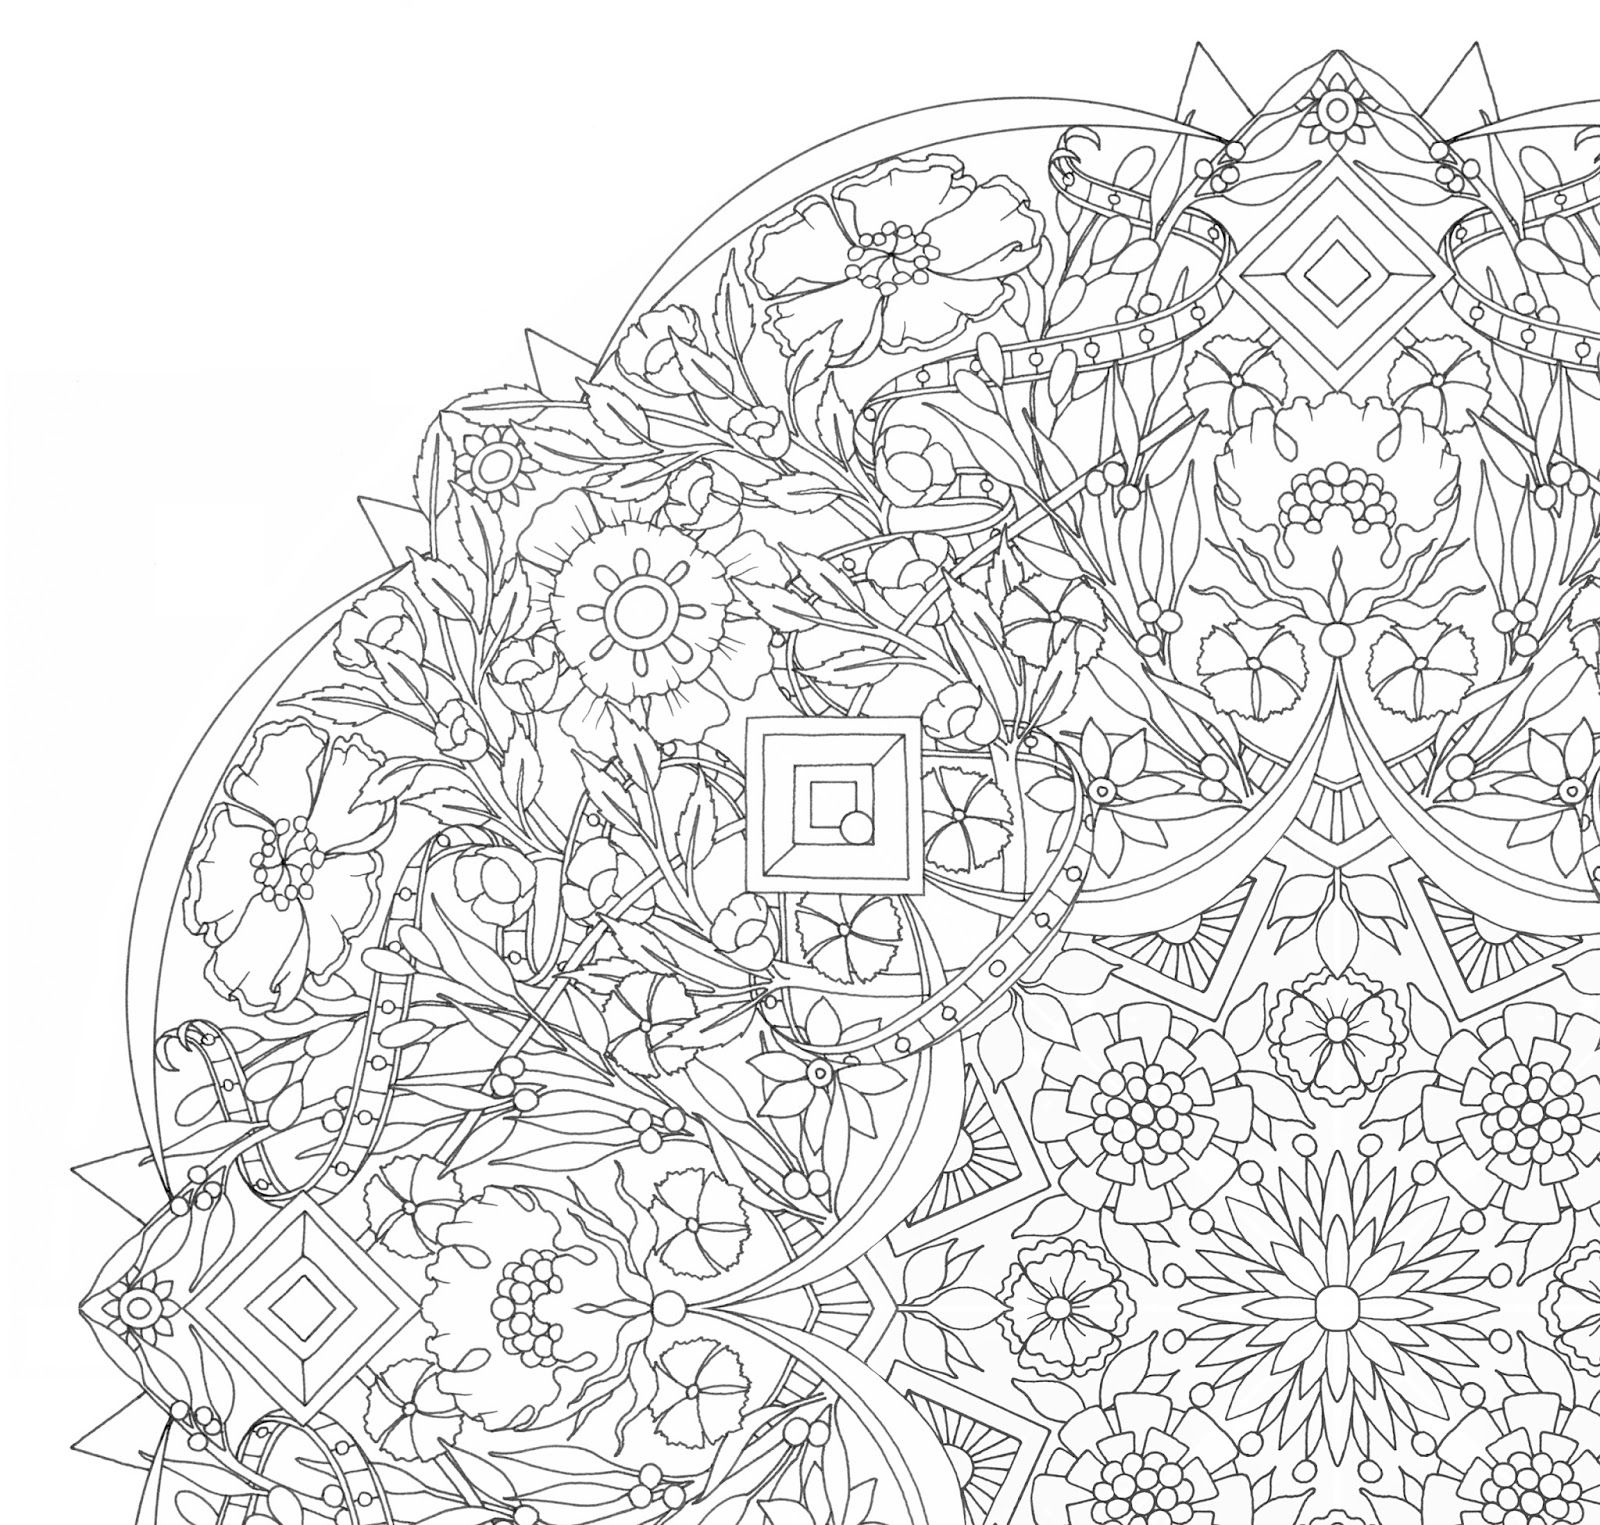 Very Detailed Coloring Pages - Coloring Home